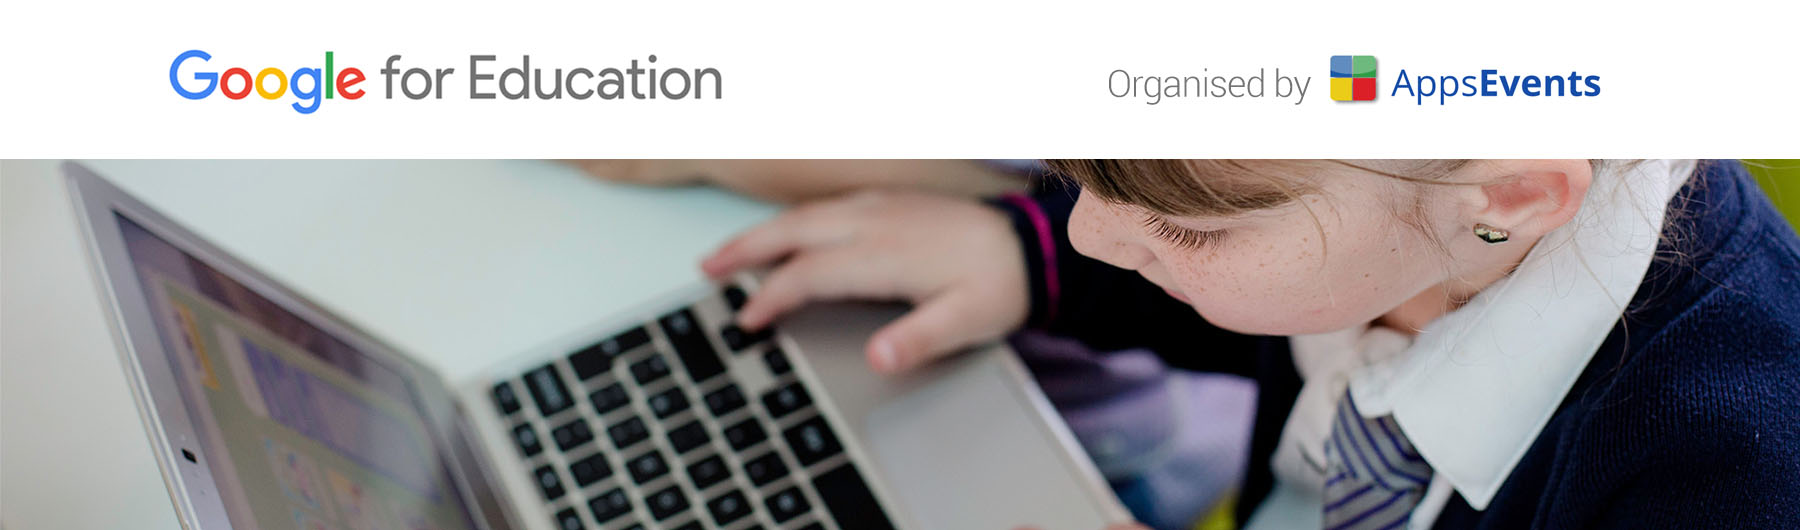 Explore and Network with Google for Education (Manchester)